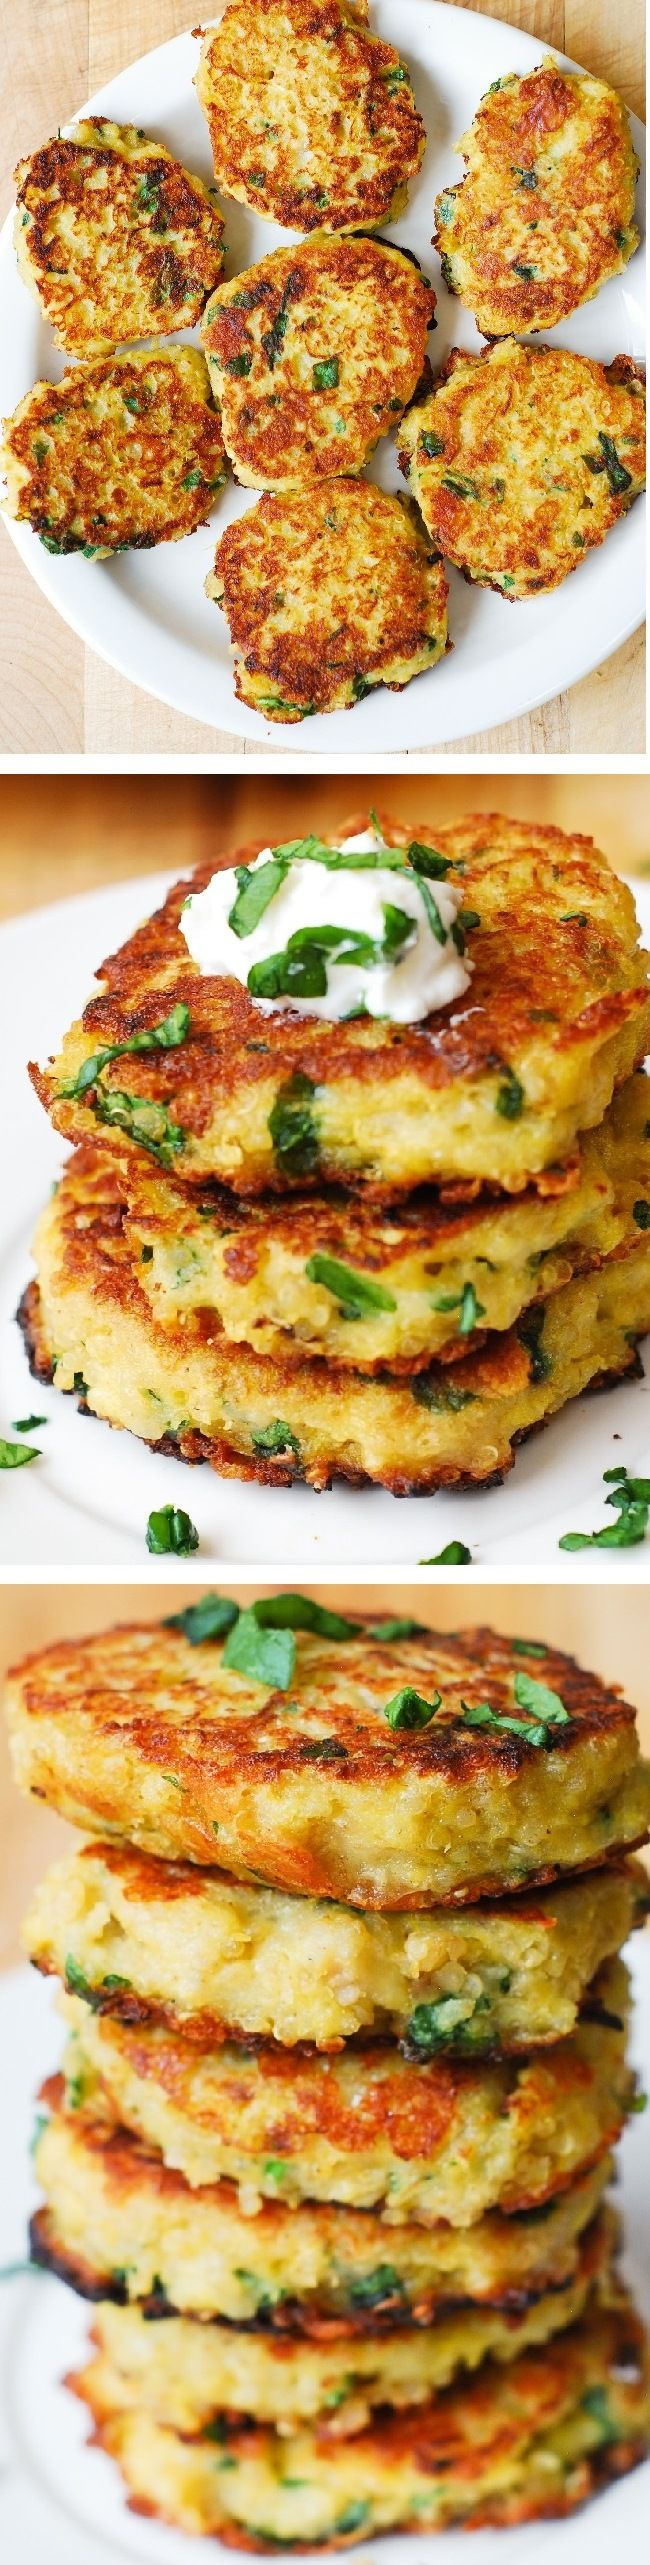 Spaghetti Squash, Quinoa and Parmesan Fritters – delicious, healthy snack #HealthyRecipes